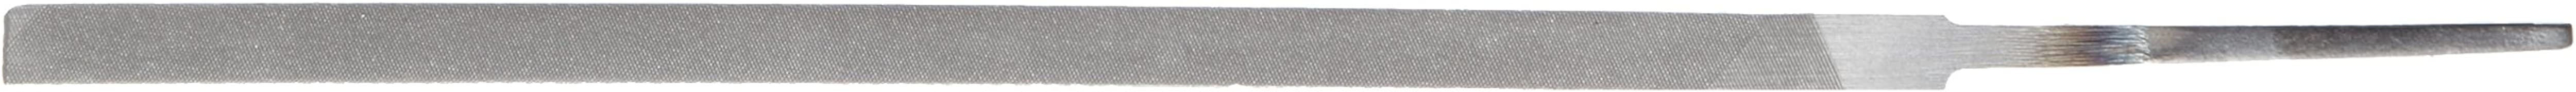 "Nicholson Pillar File, Swiss Pattern, Double Cut, Rectangular, #2 Coarseness, 6"" Length, Extra Narrow"